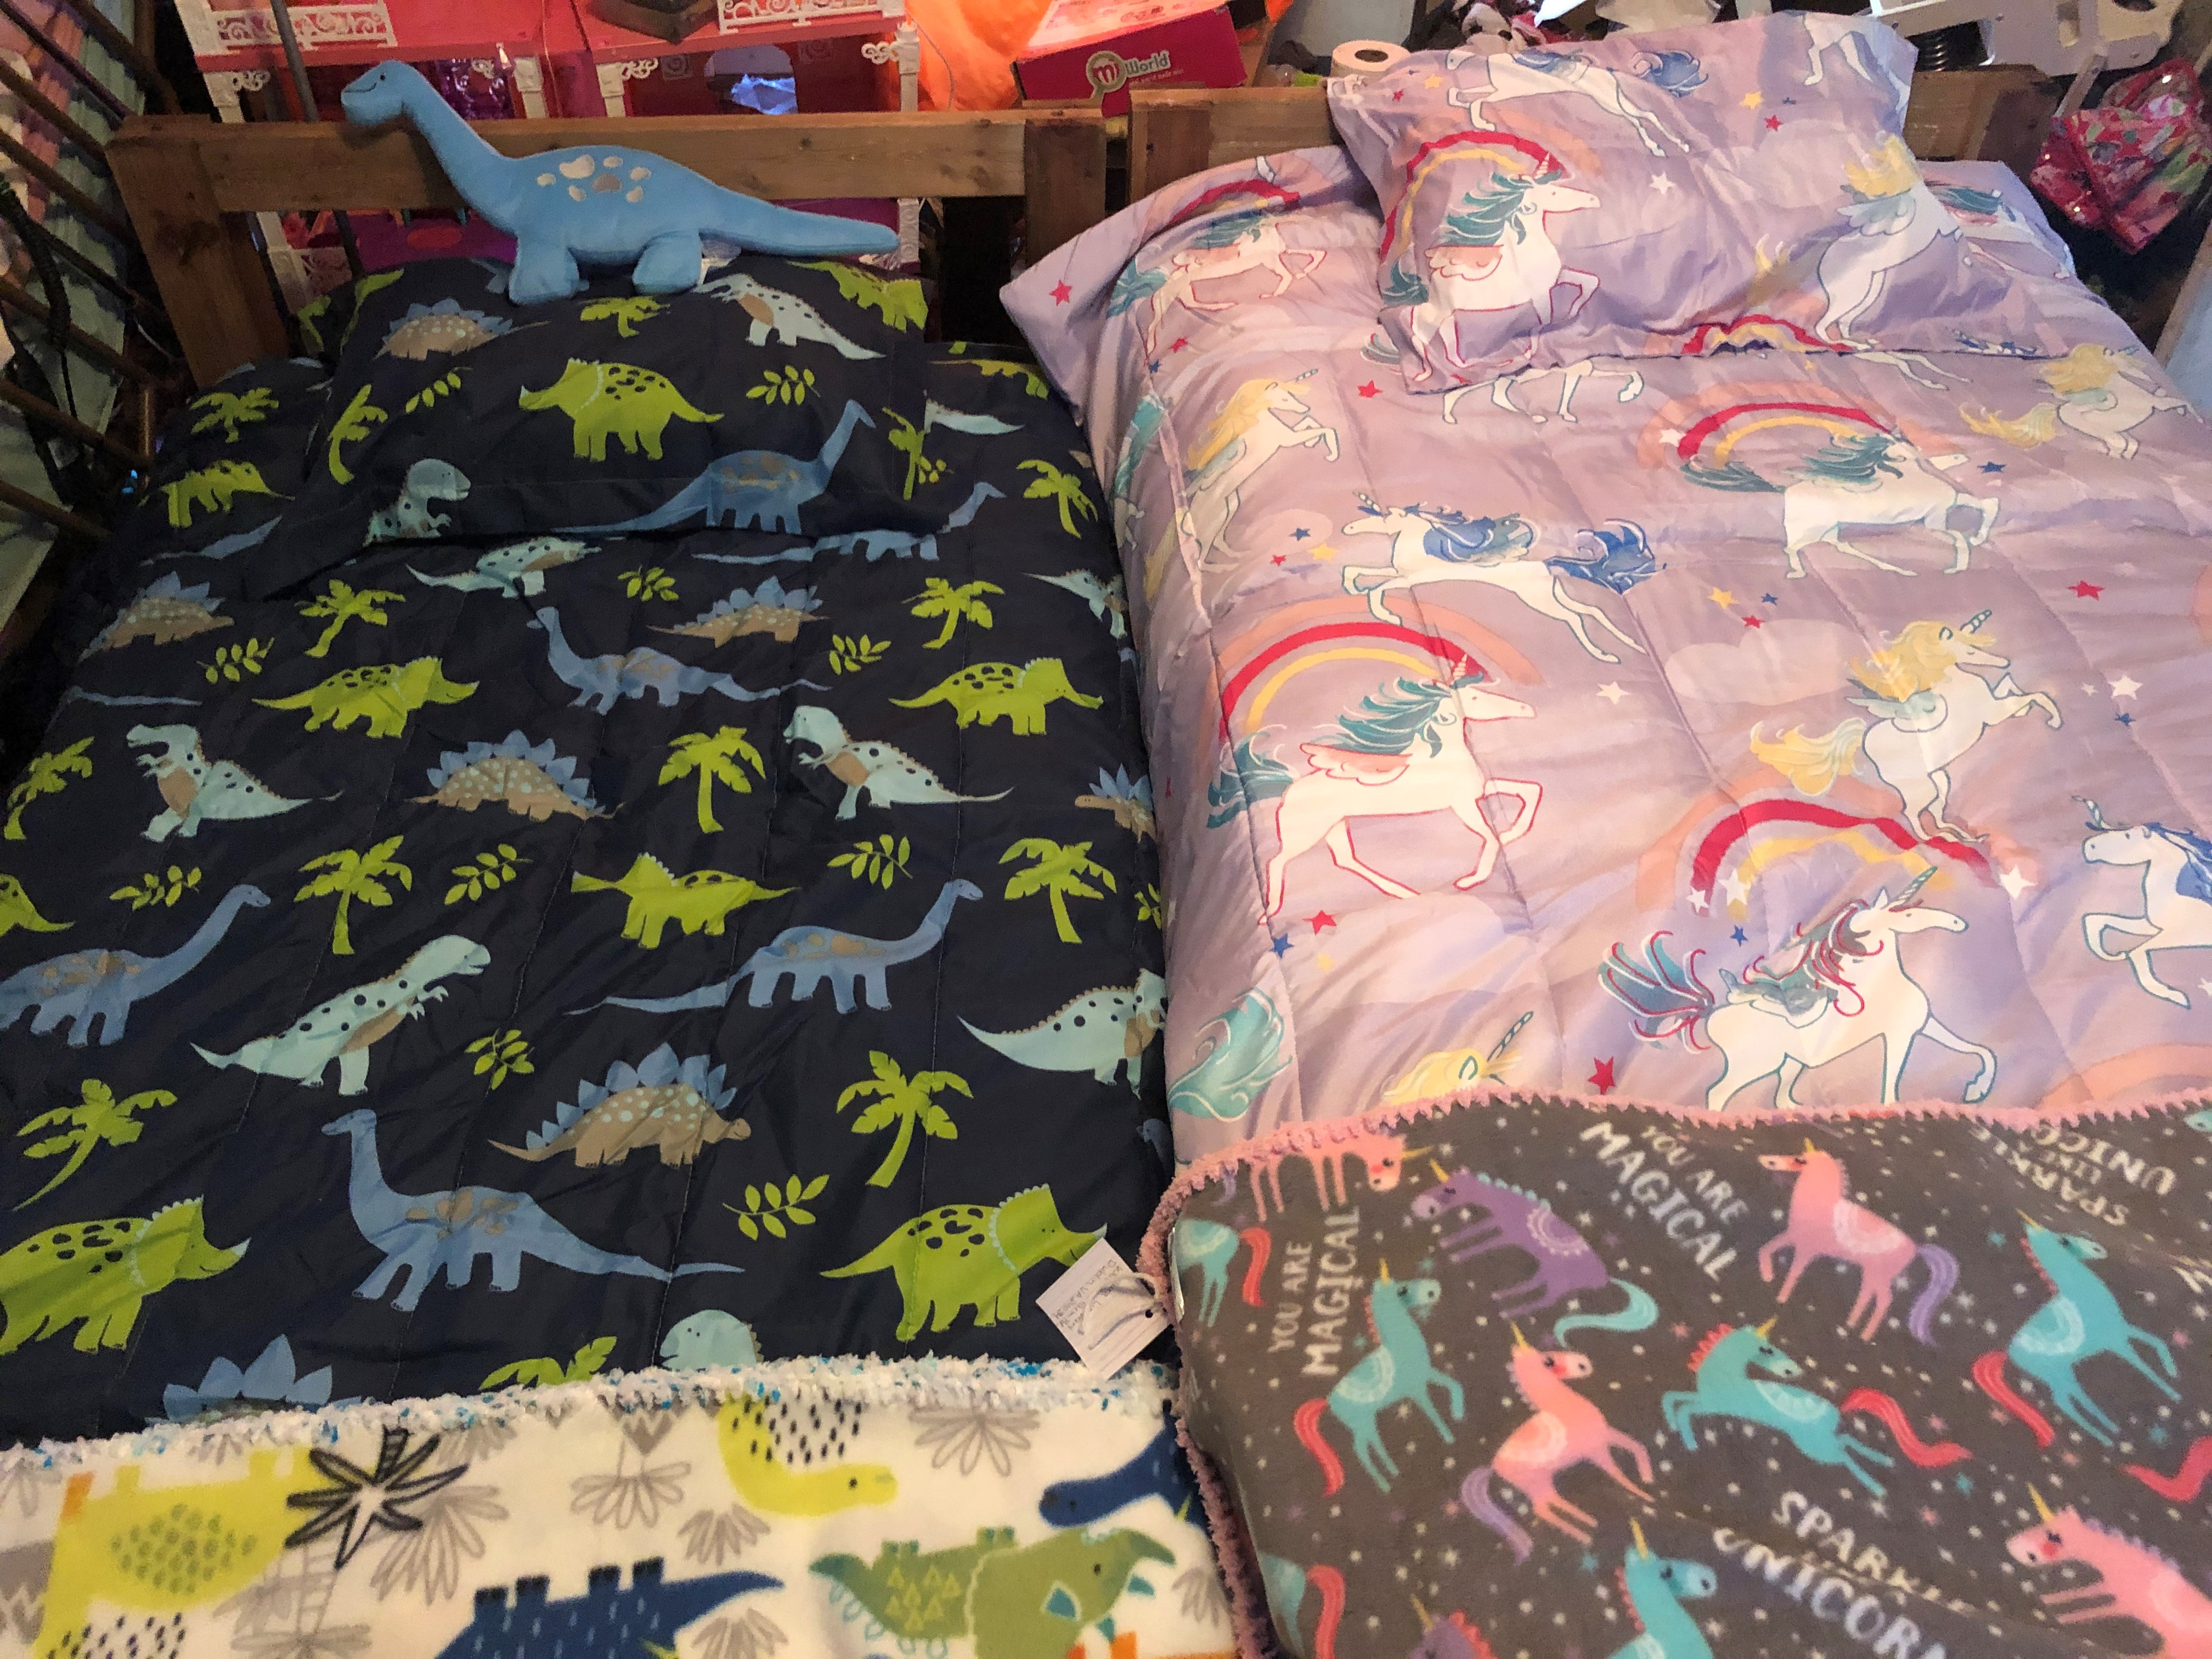 Picture of beds with blankets